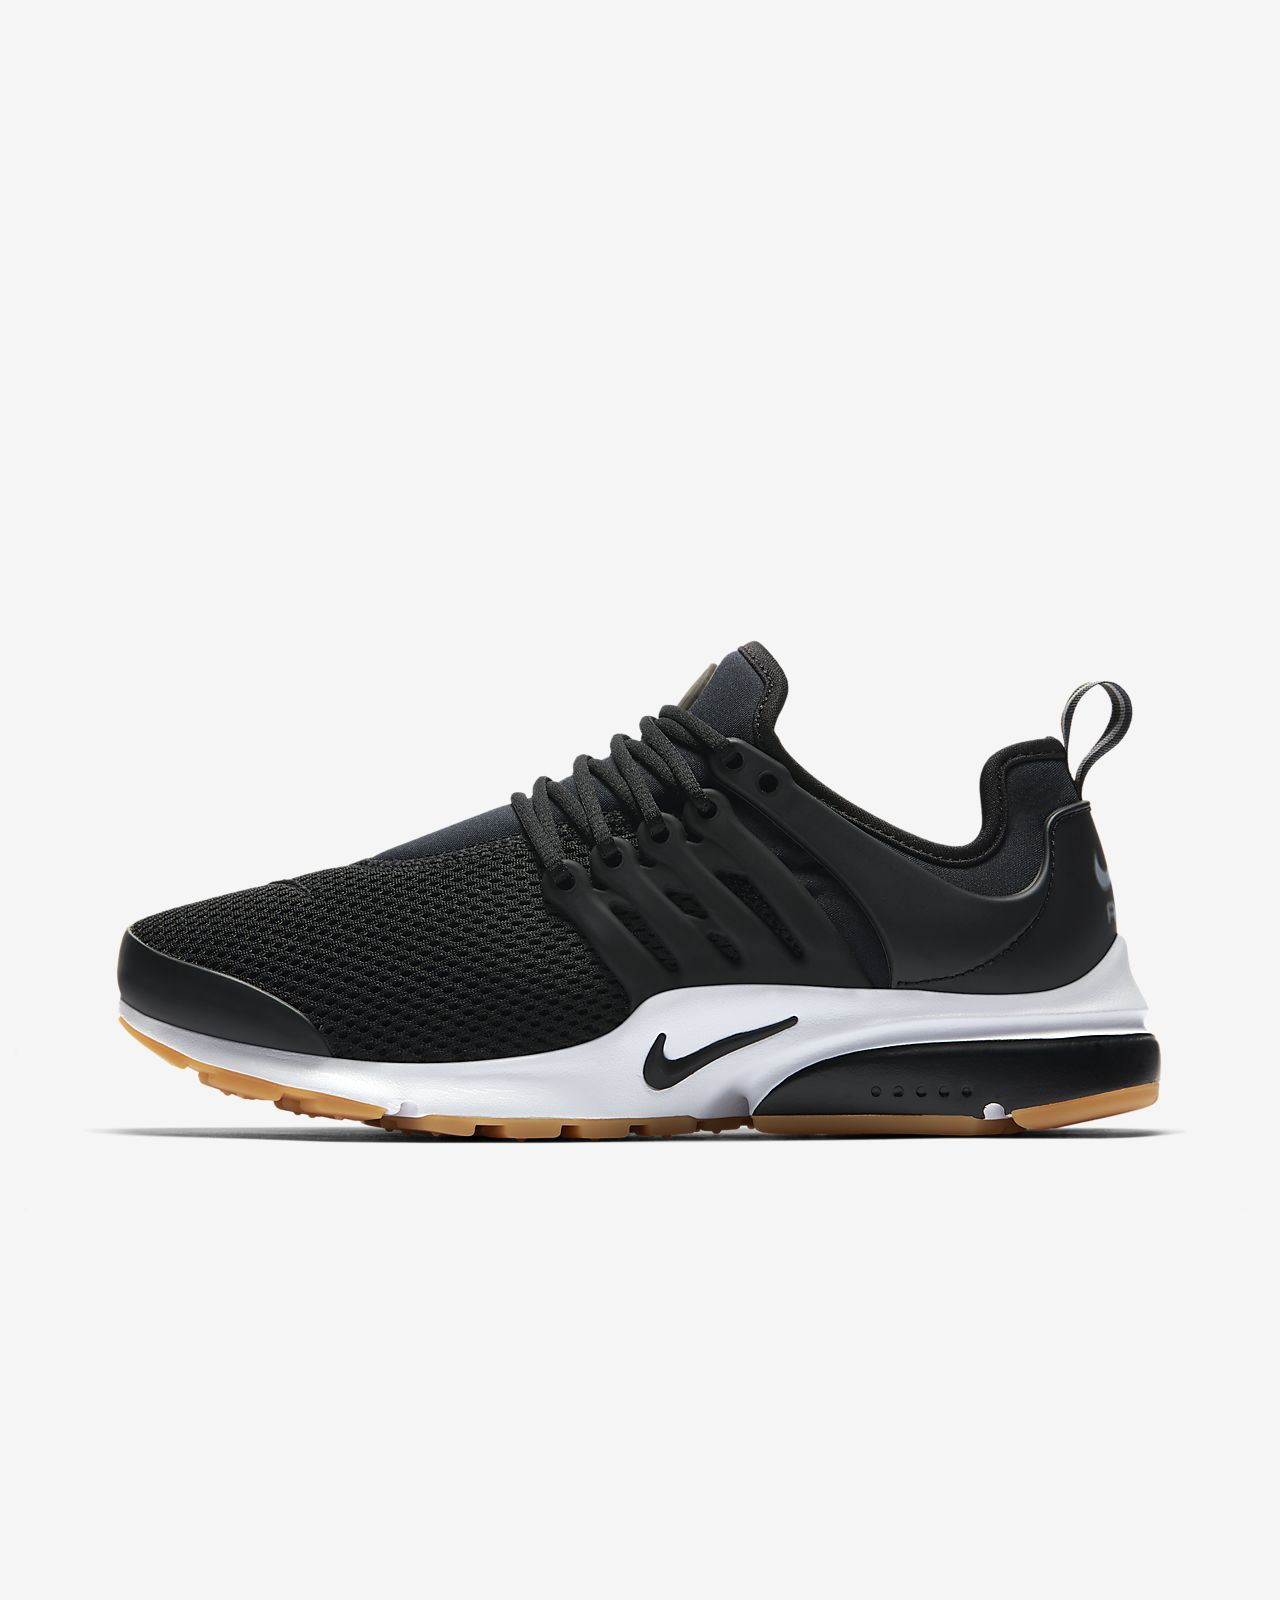 premium selection a08e5 fb927 Nike Air Presto Women's Shoe